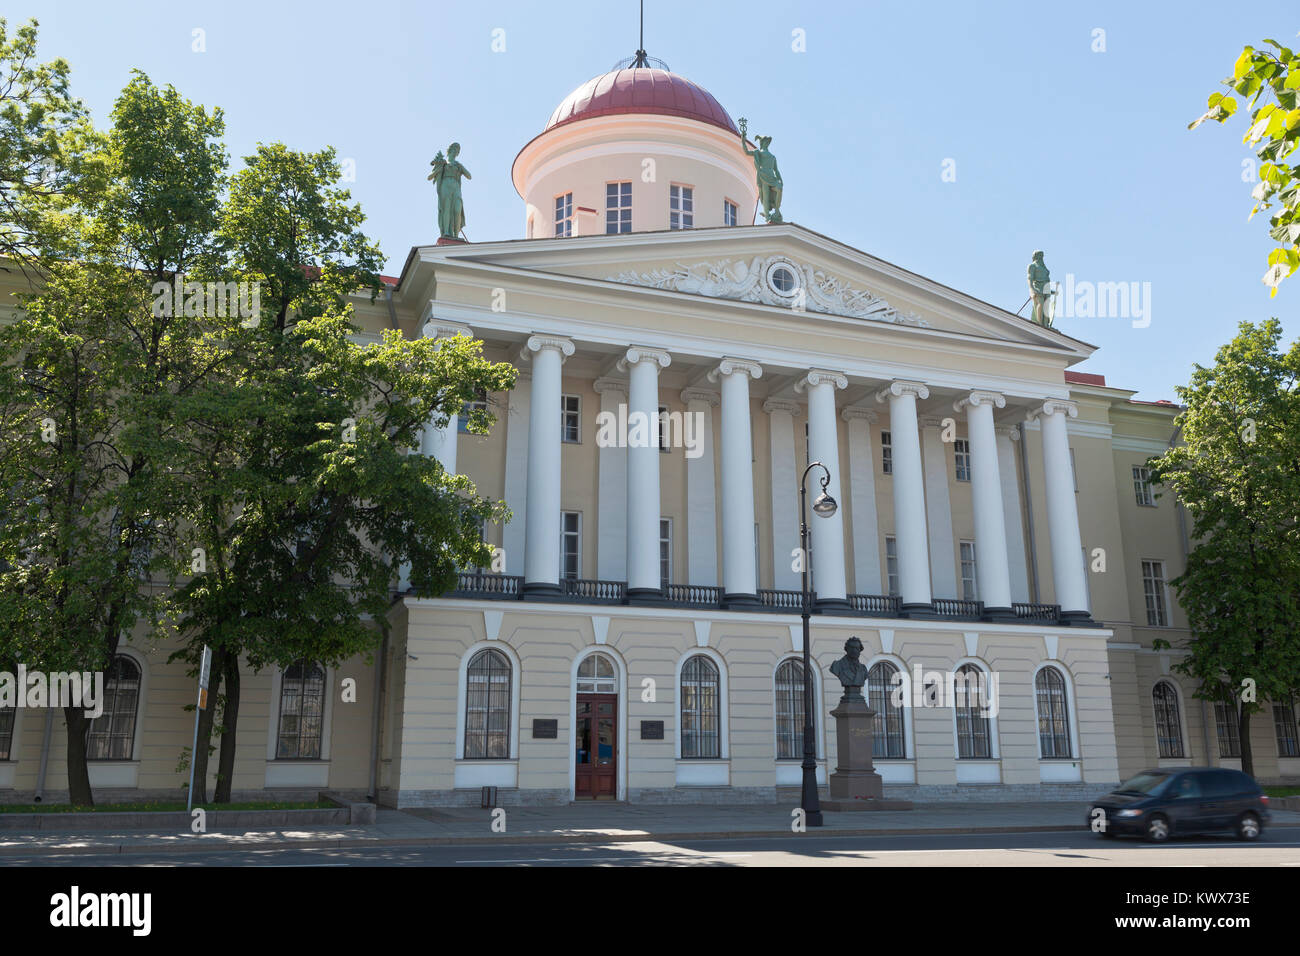 Institute of Russian Literature of the Russian Academy of Sciences in St. Petersburg, Russia - Stock Image